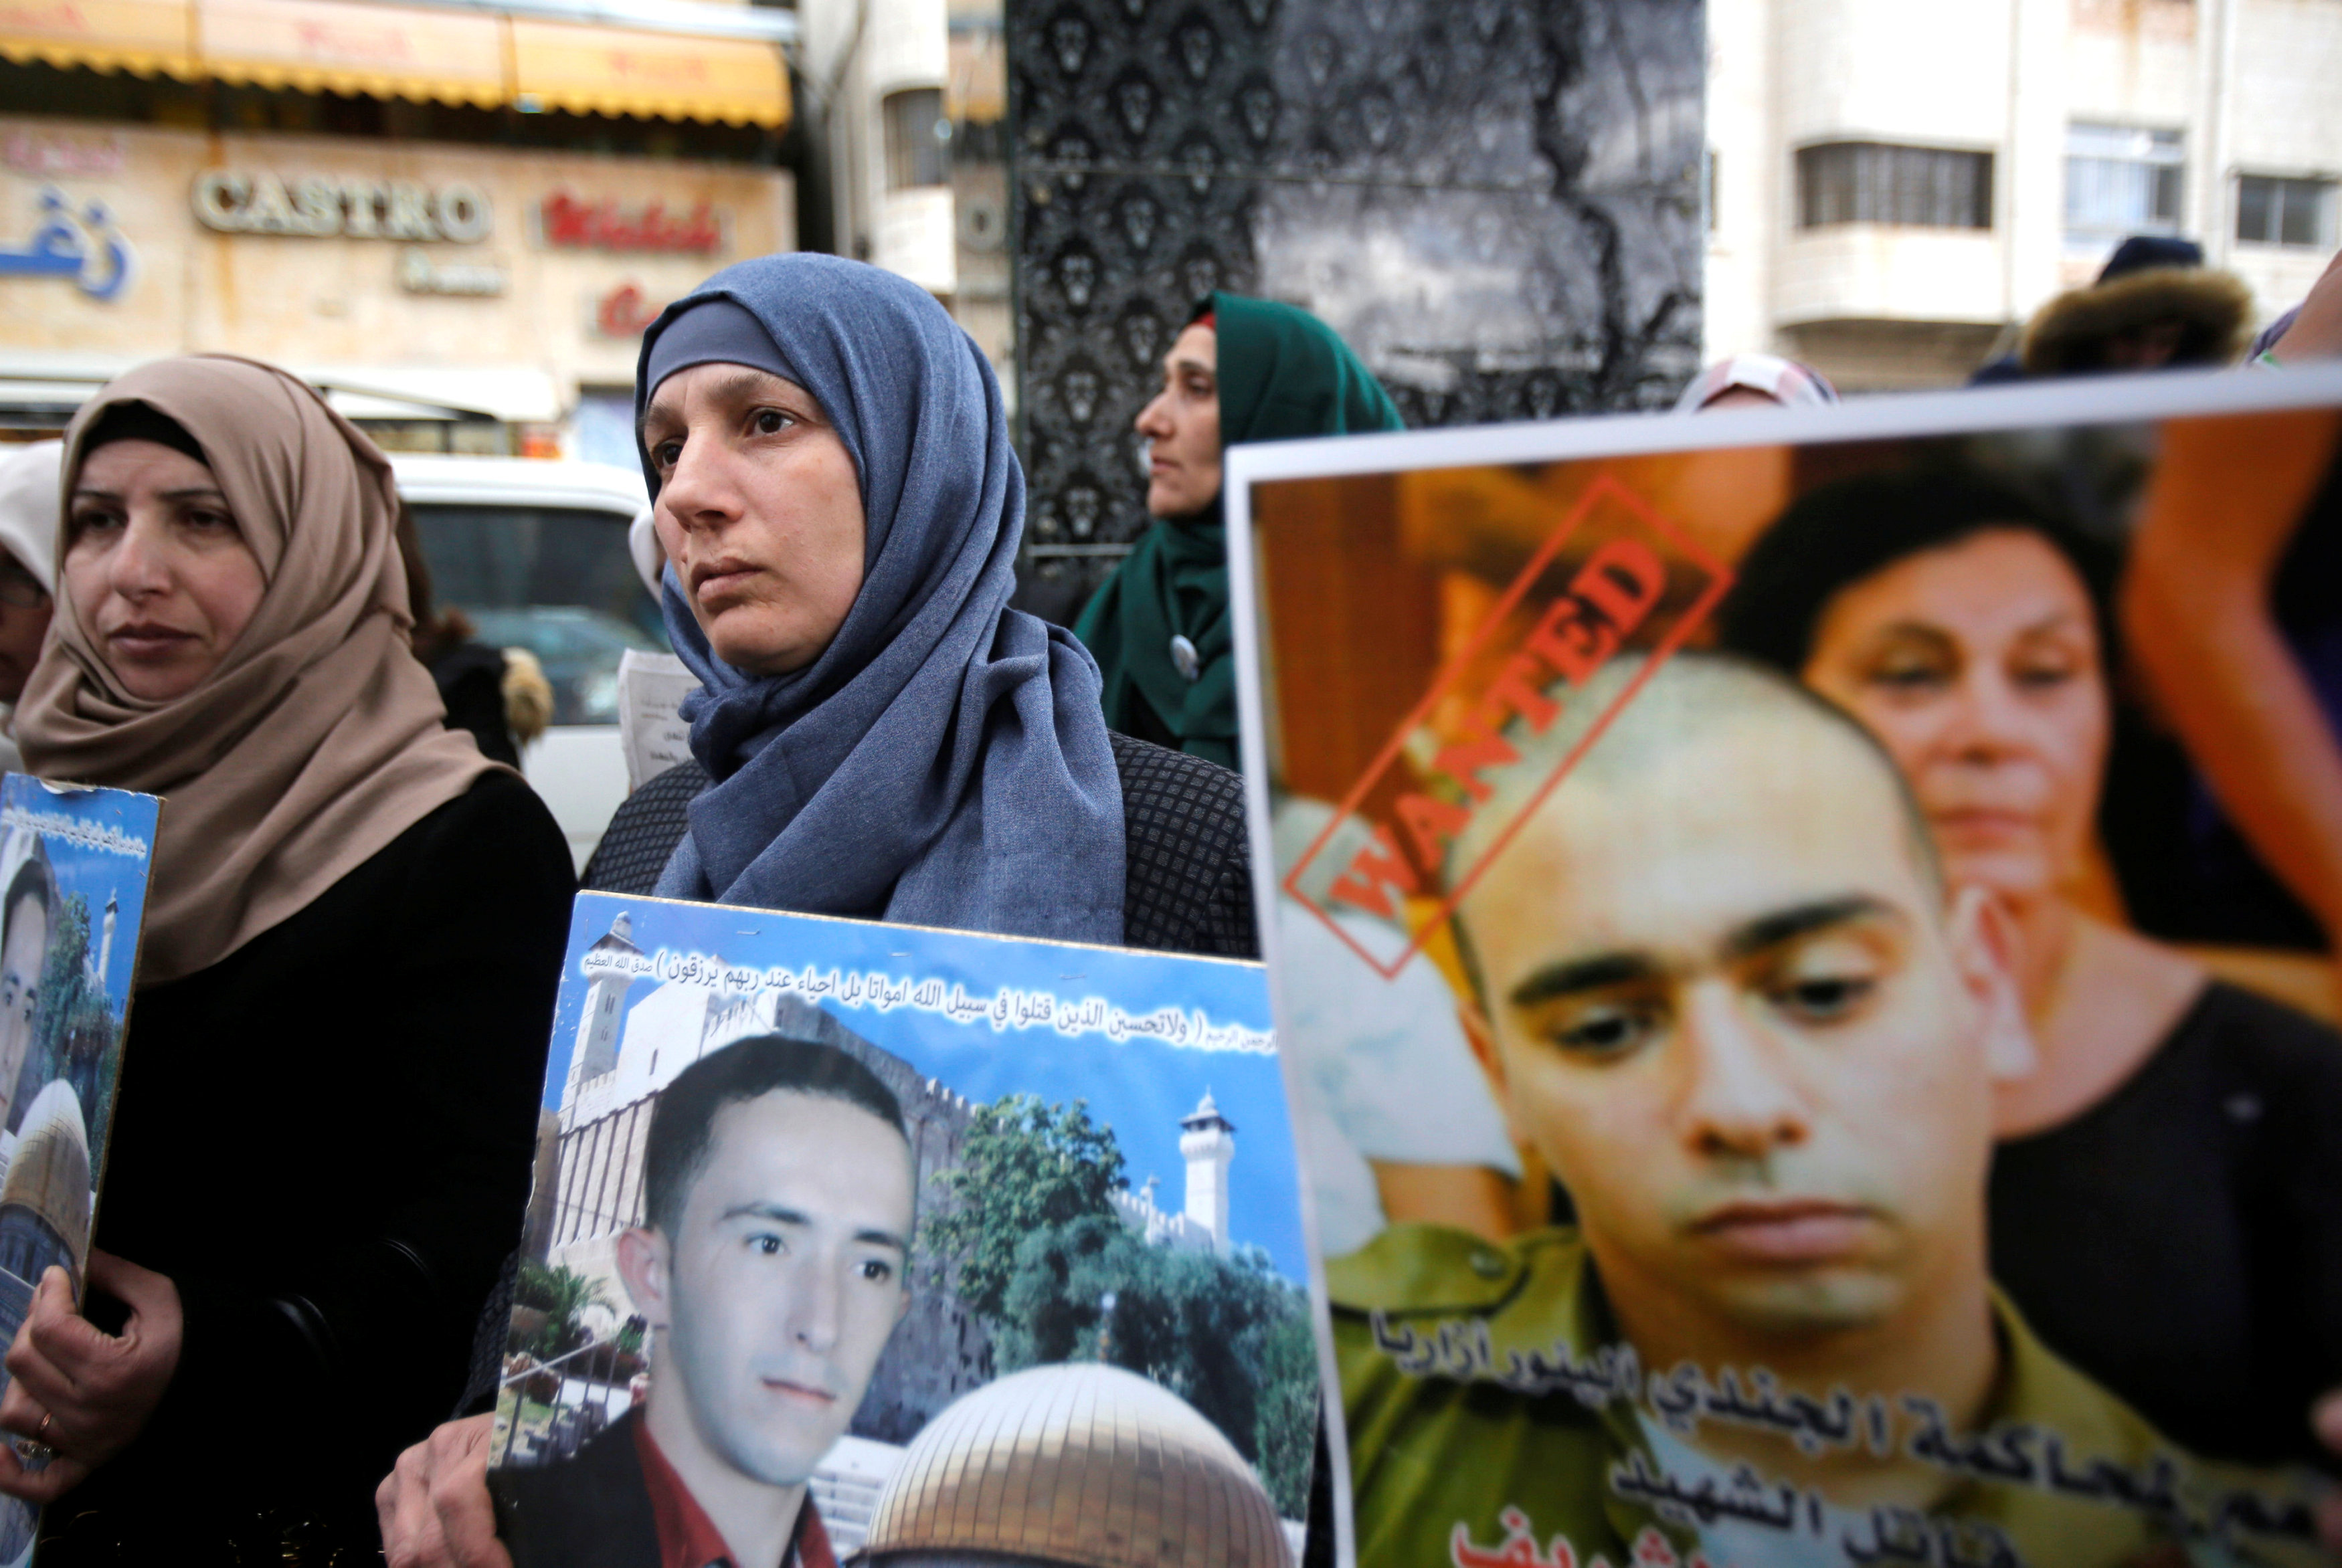 The mother (C) of Palestinian assailant Abdel Fattah al-Sharif holds his poster as another woman holds a poster of Israeli soldier Elor Azaria, who is charged with manslaughter by the Israeli military, during a protest in the West Bank city of Hebron January 4, 2017. REUTERS/Mussa Qawasma